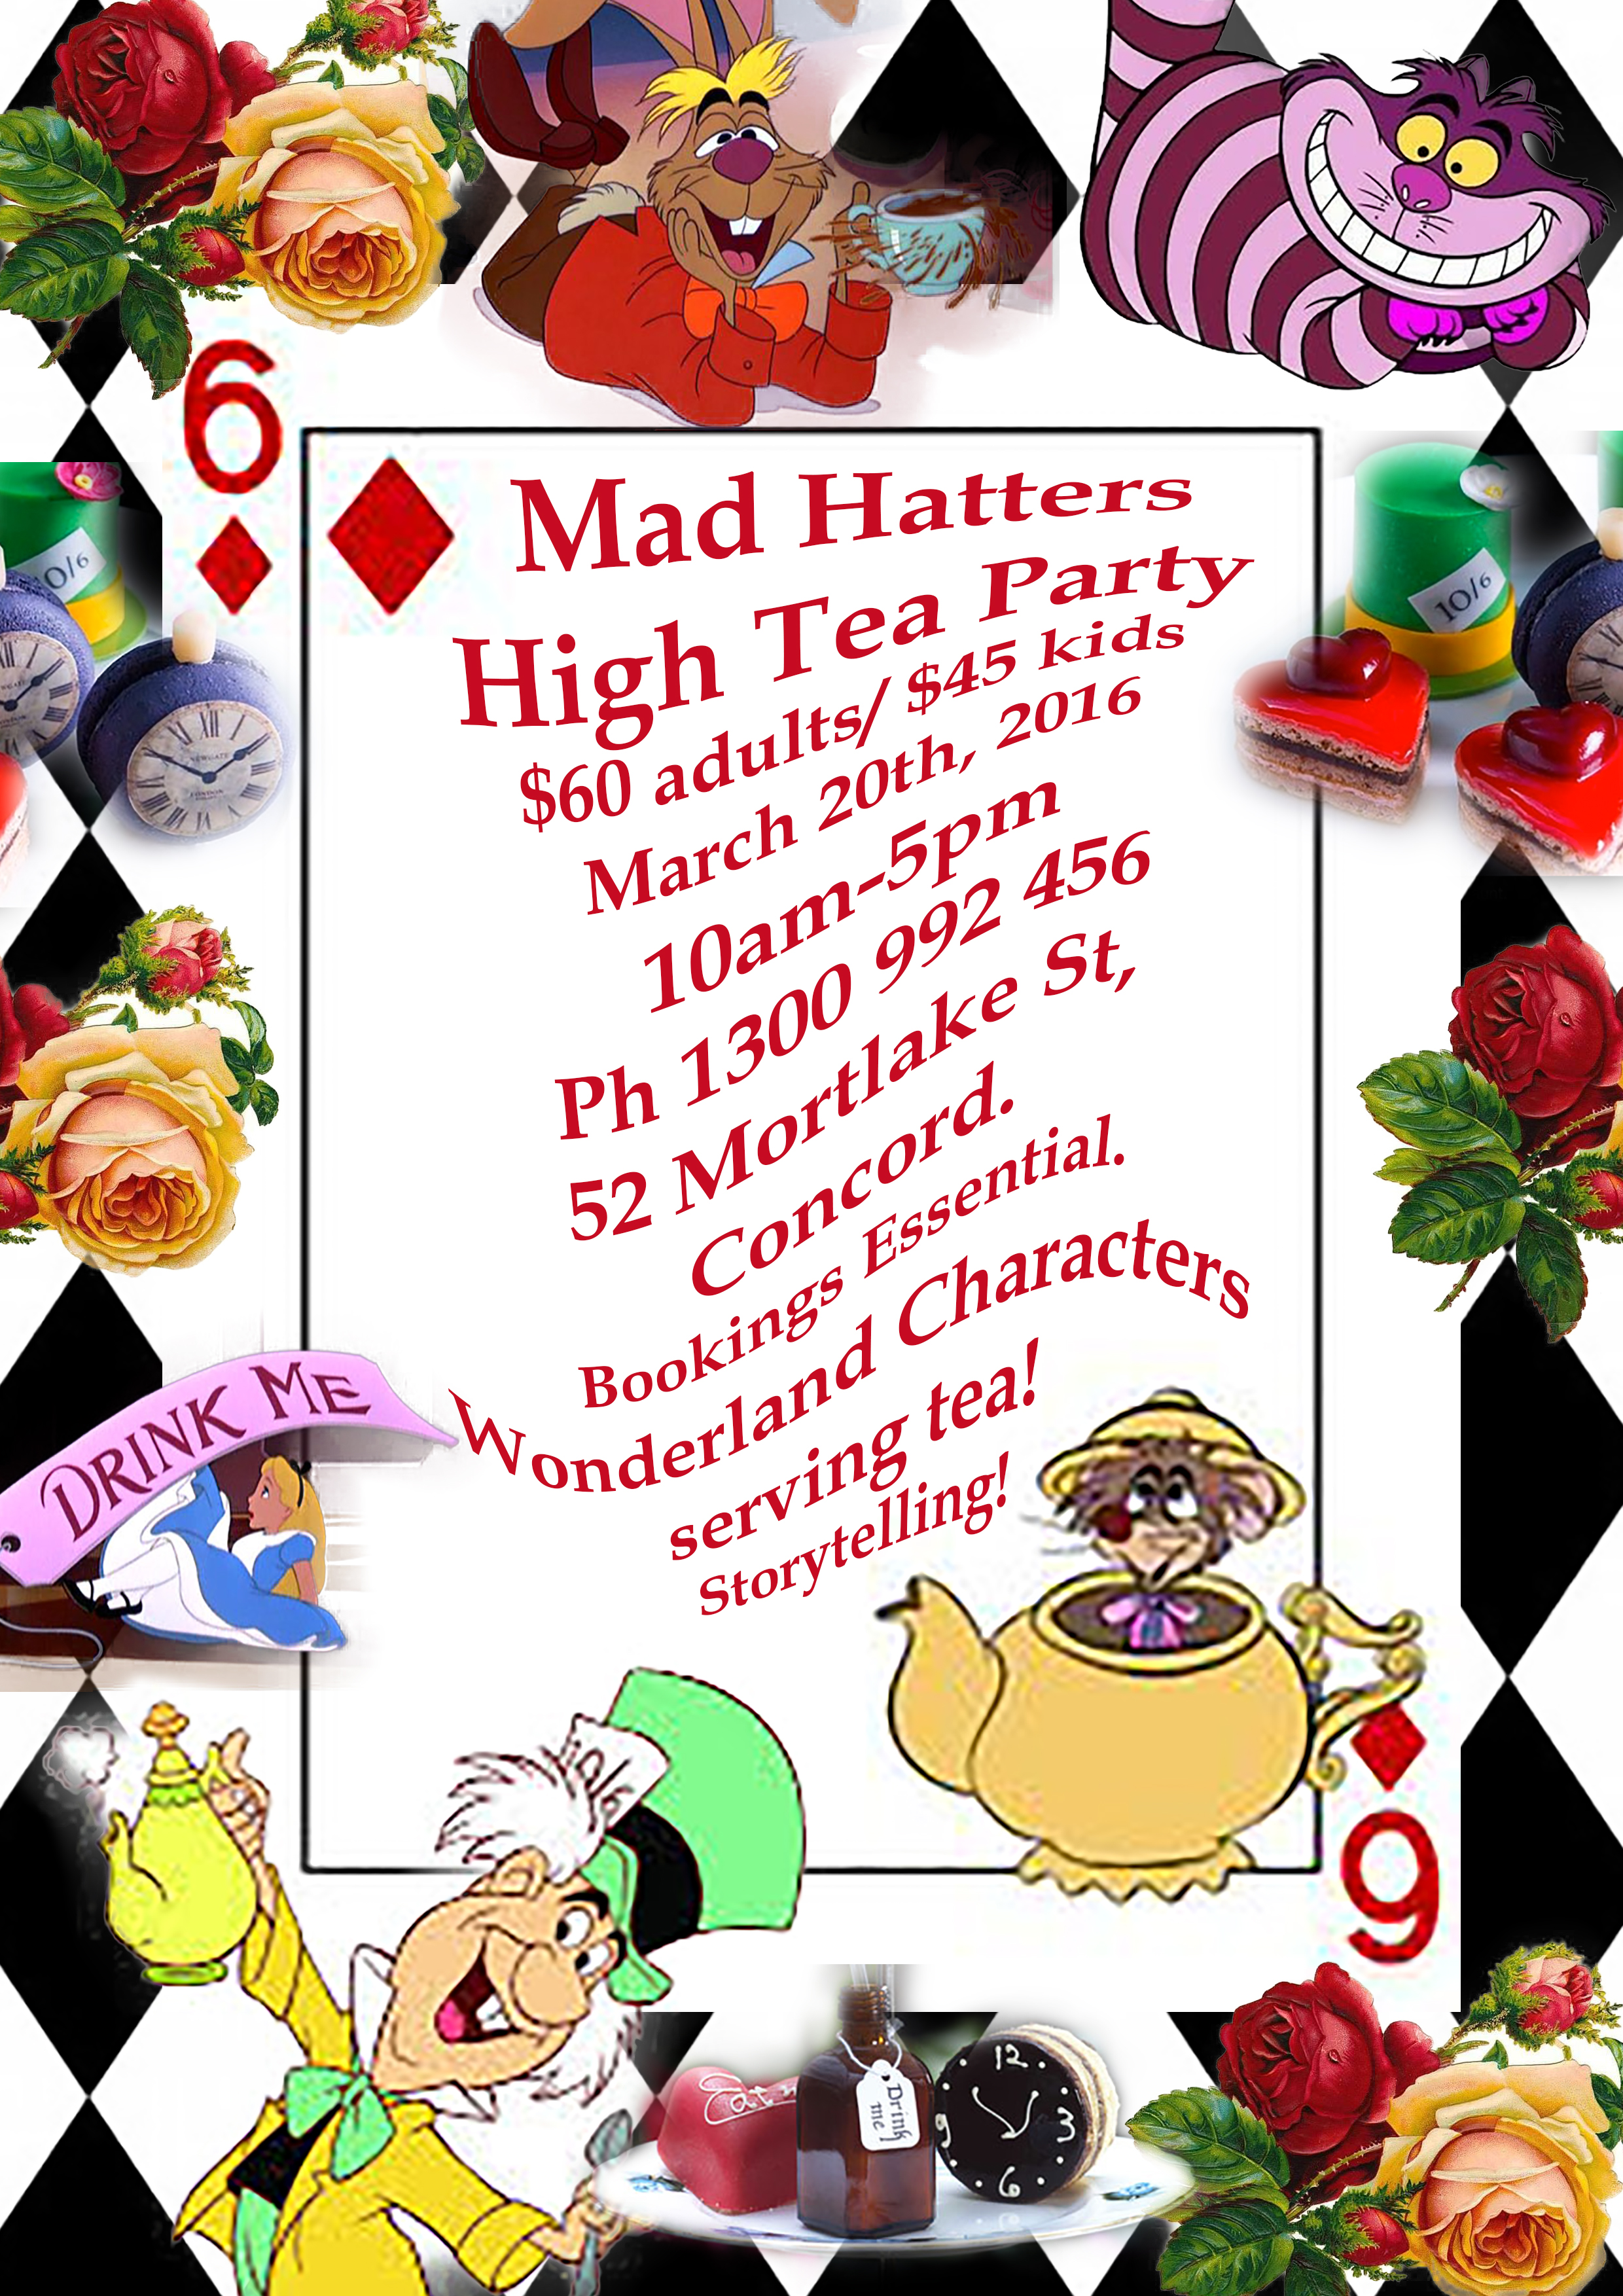 mad hatter u2019s tea party set for march  finding fairyland painting boxes preschool painting boxes to look like stone